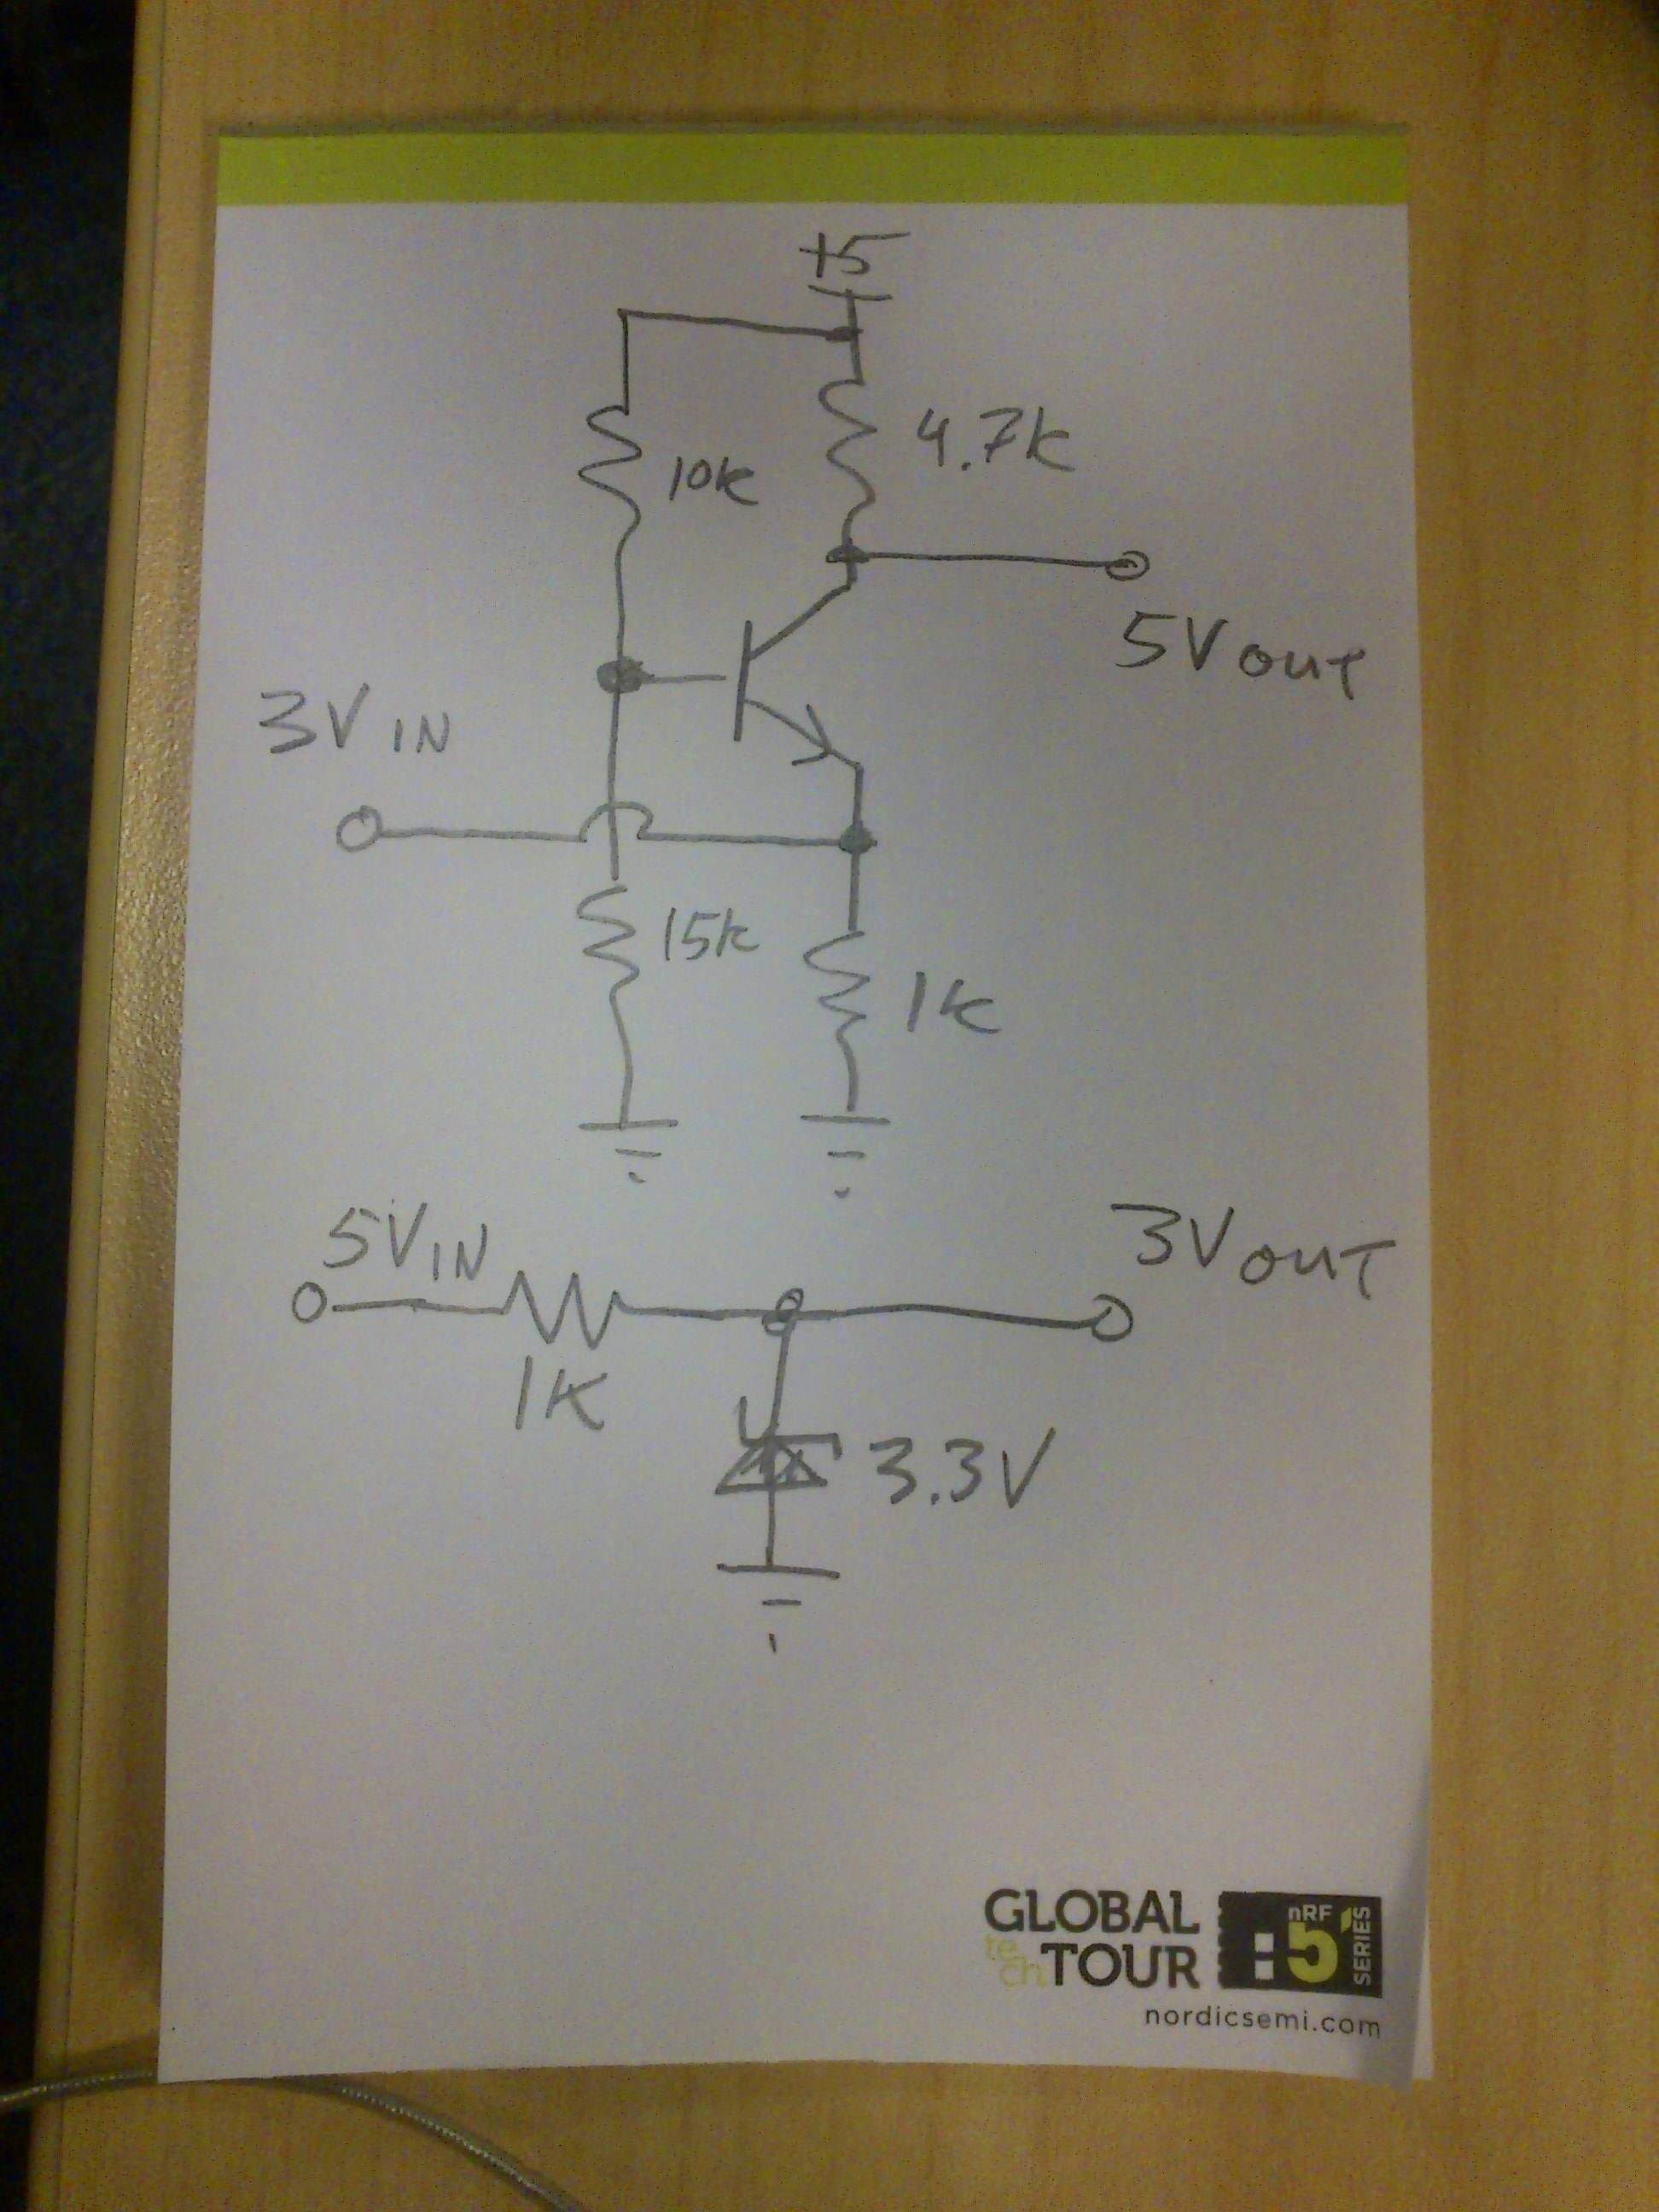 What Would The Schematic Look Like With A Mosfet Instead Of The Npn